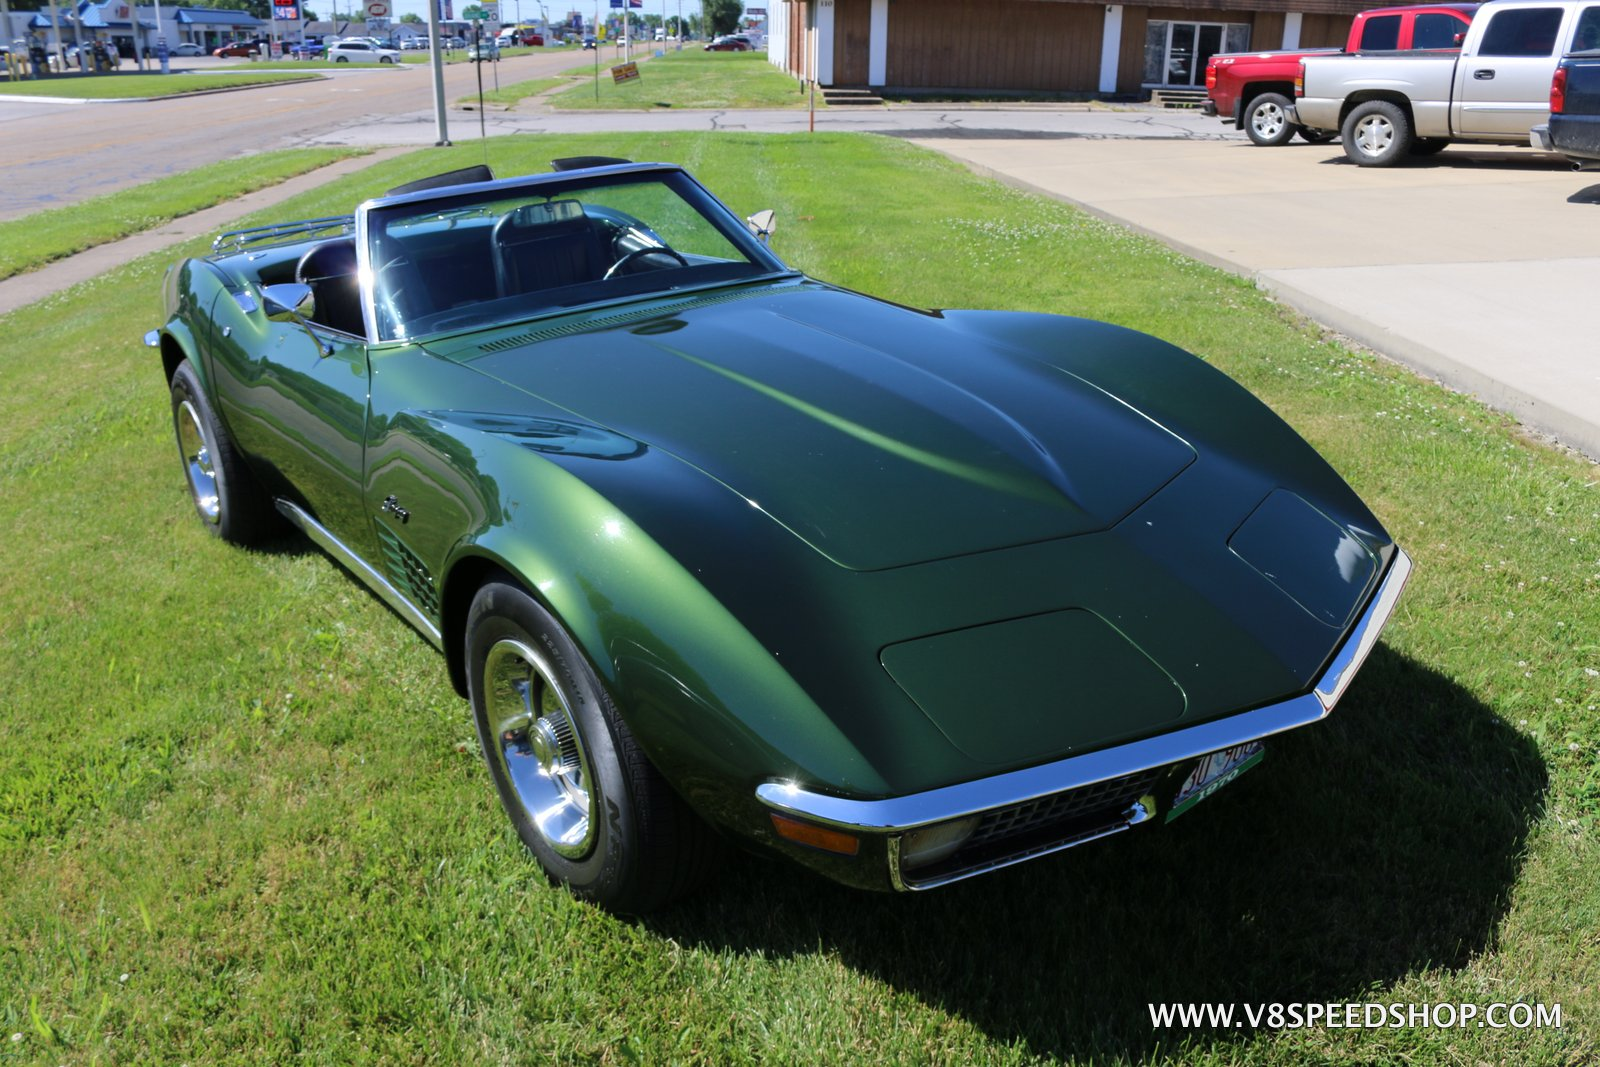 1970 Chevrolet Corvette Suspension Upgrades at the V8 Speed and Resto Shop